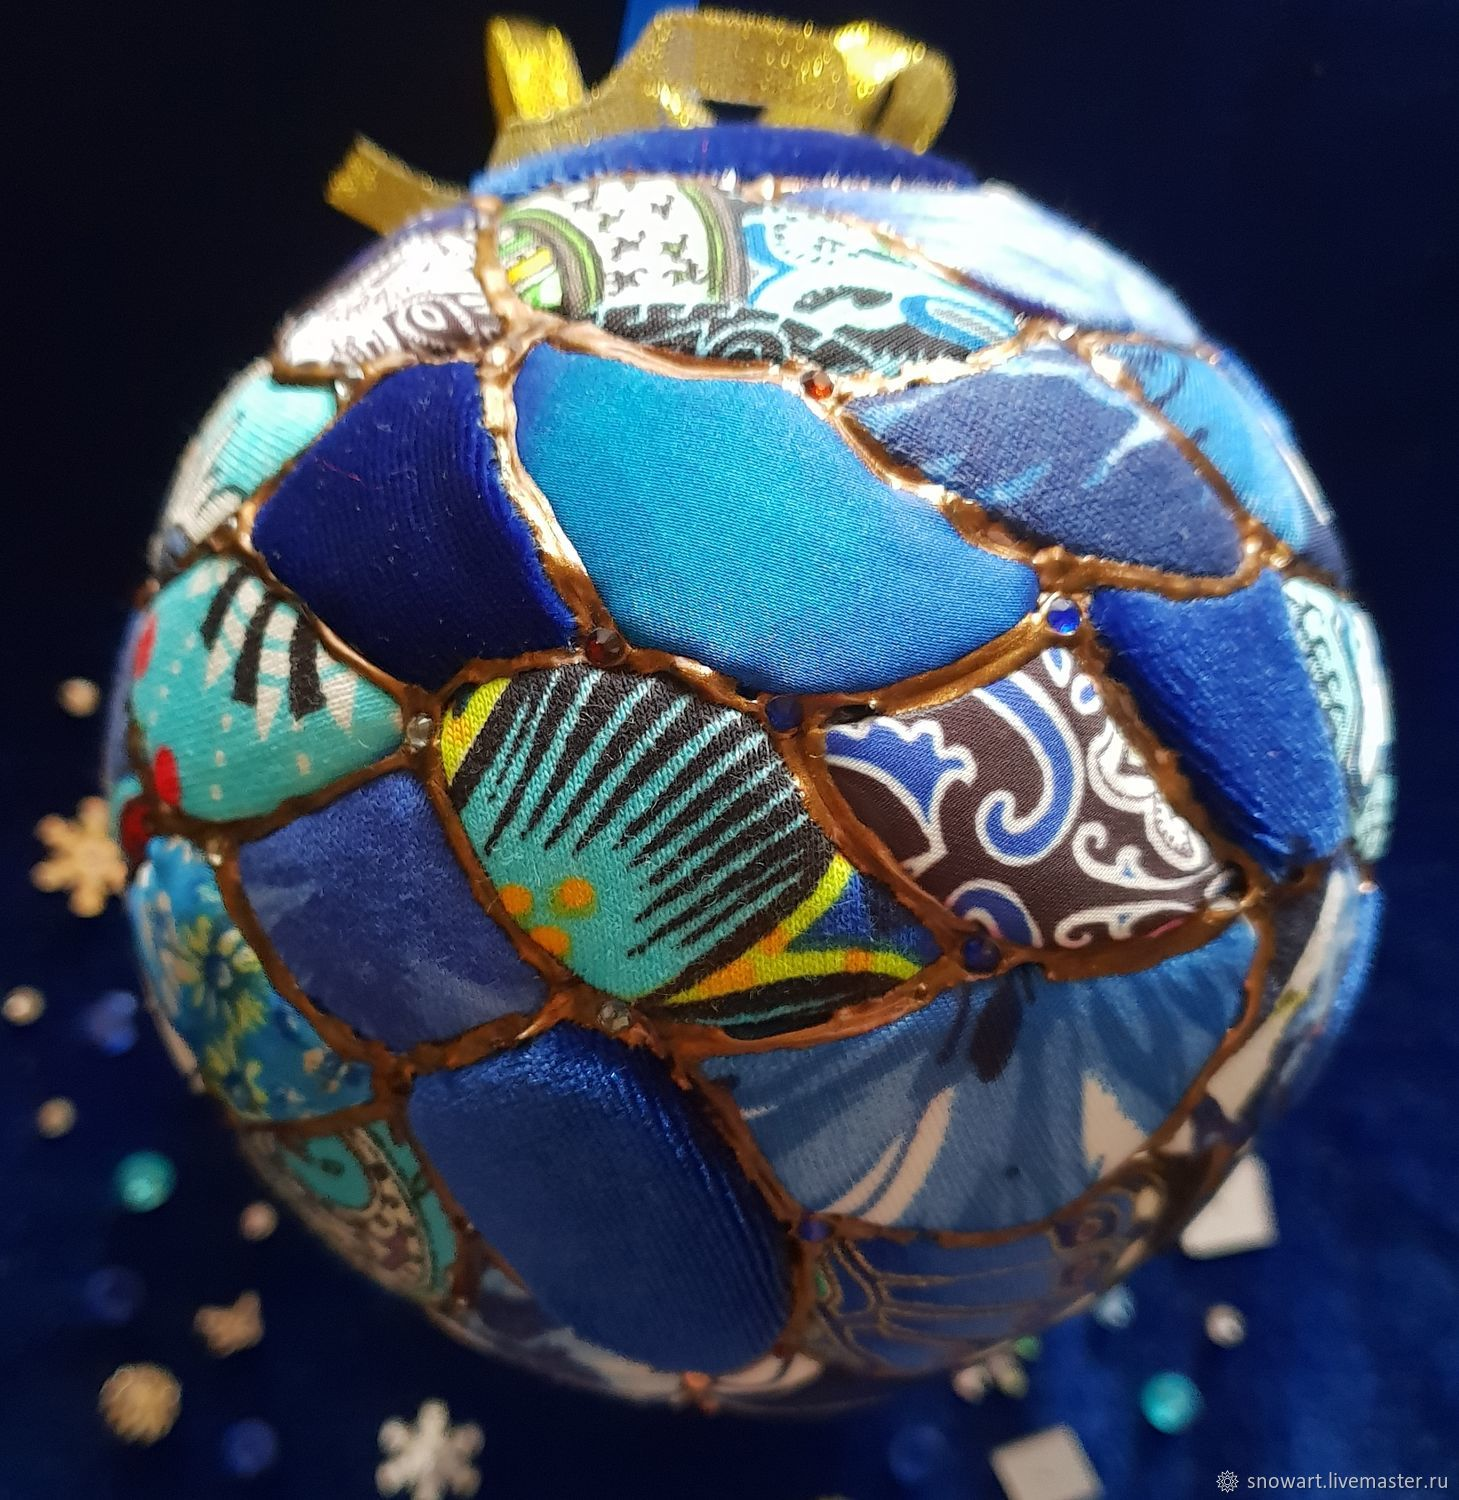 Christmas decorations Patchwork – shop online on Livemaster with